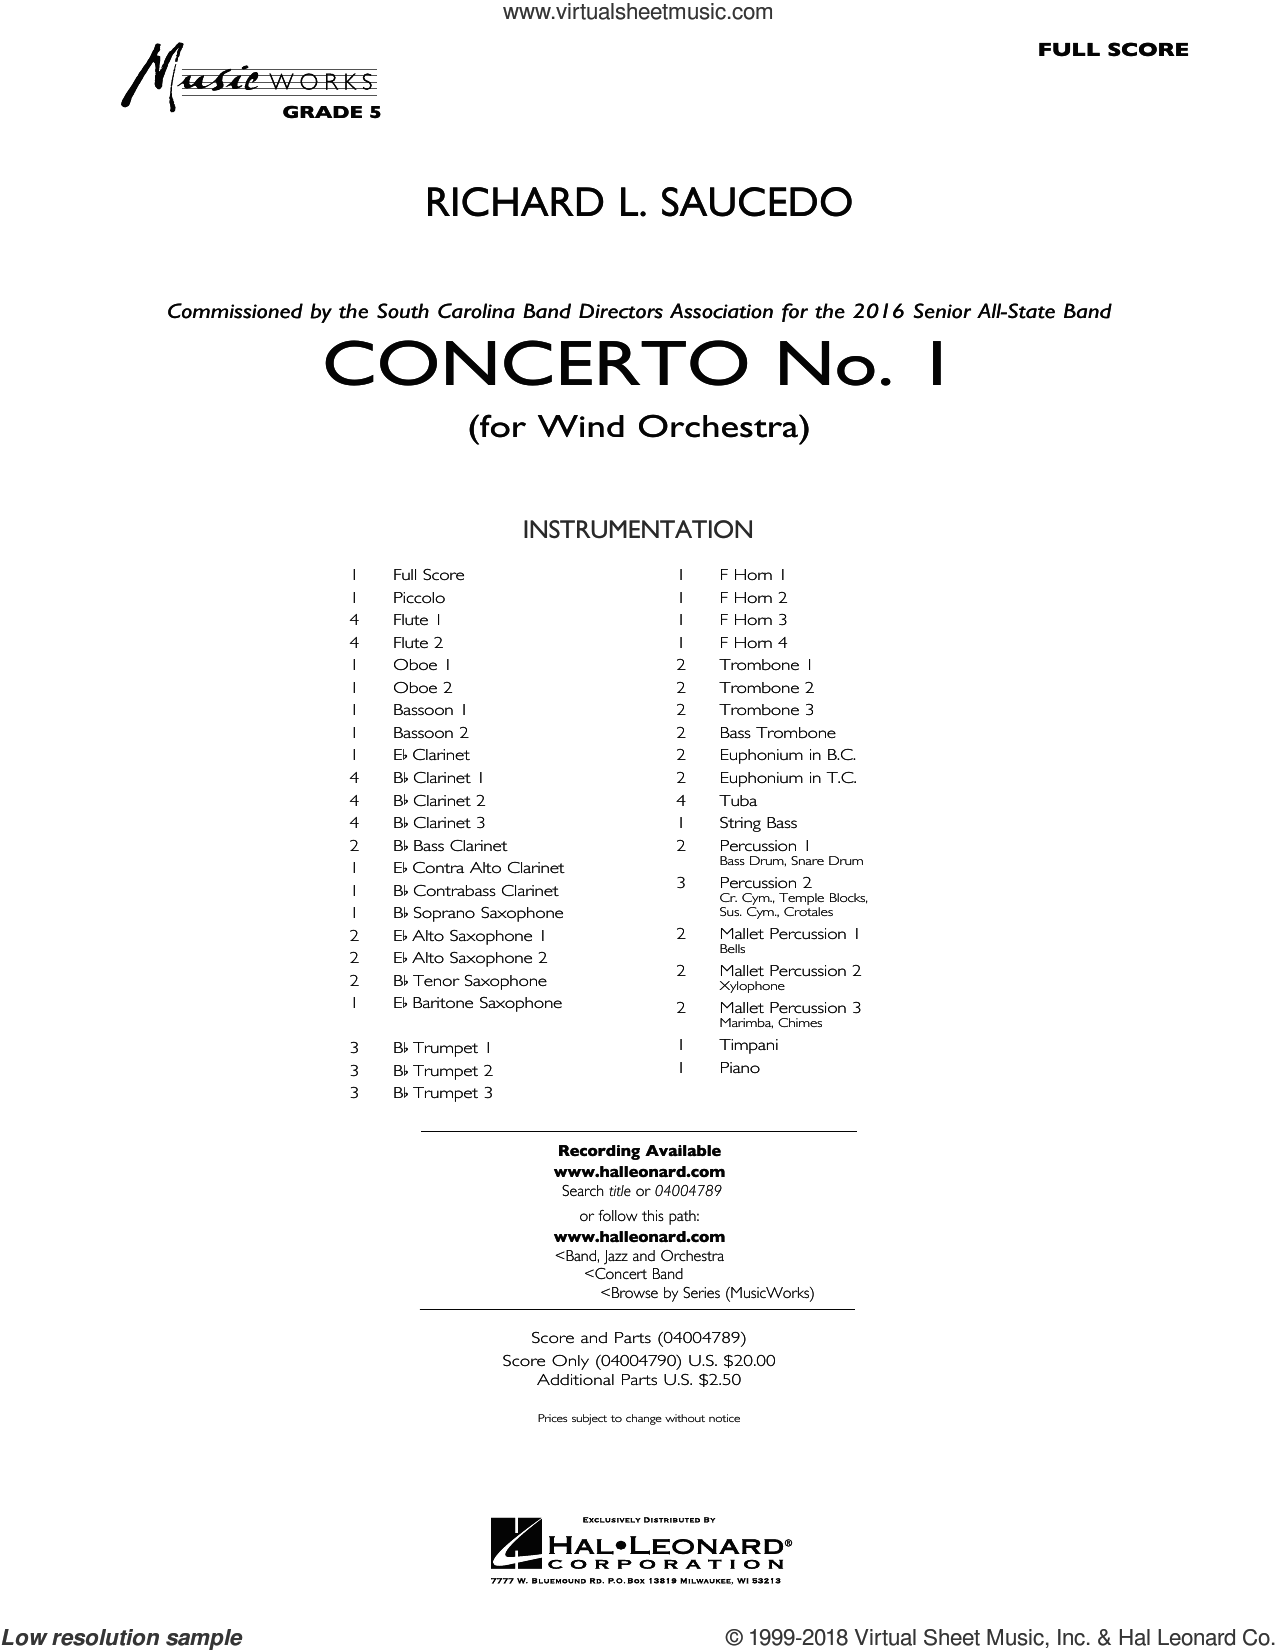 Concerto No. 1 (for Wind Orchestra) (COMPLETE) sheet music for concert band by Richard L. Saucedo, intermediate skill level